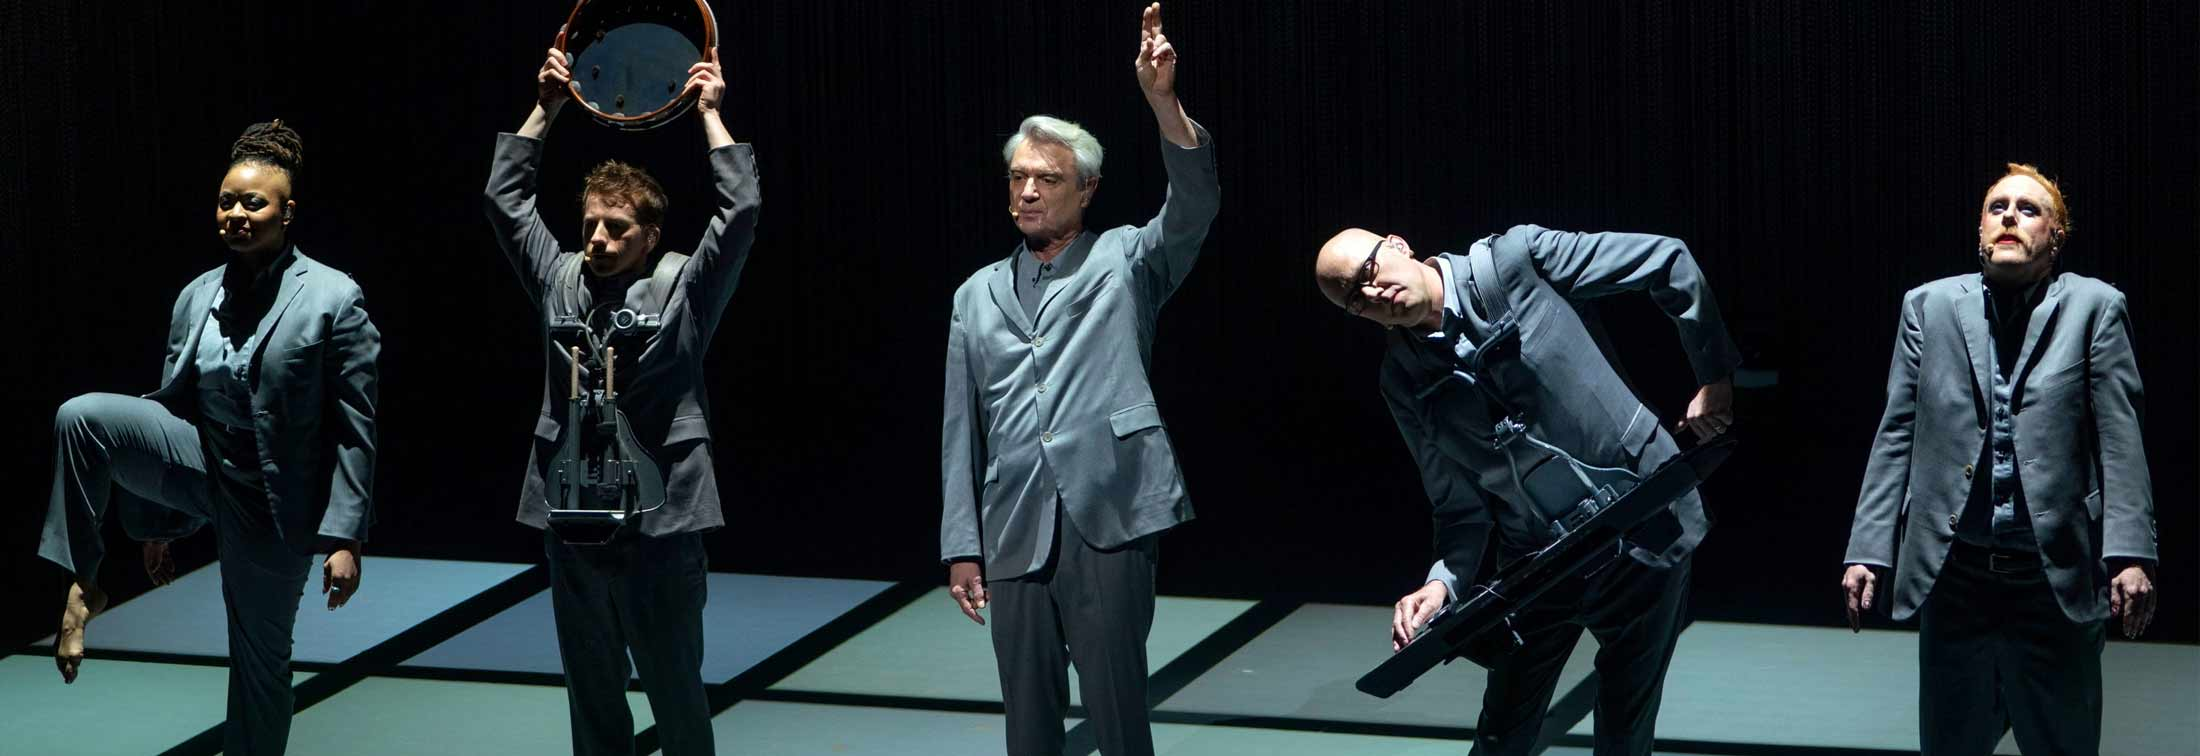 David Byrne's American Utopia - One of the greatest concert films ever made